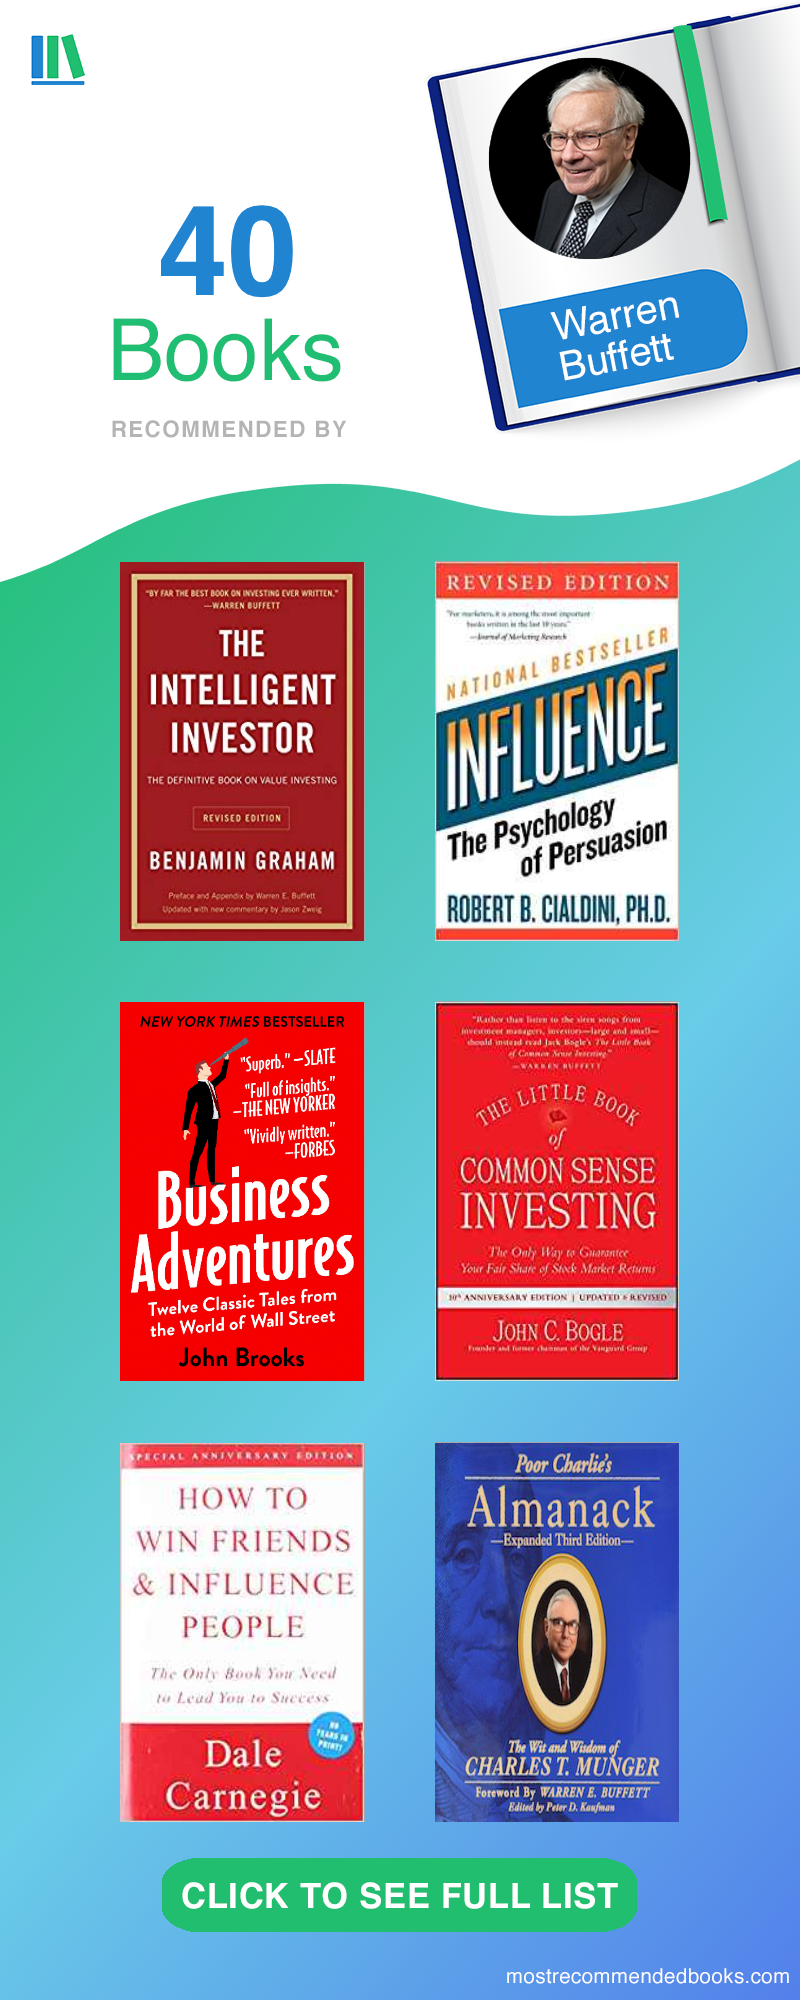 investment books recommended by warren buffett